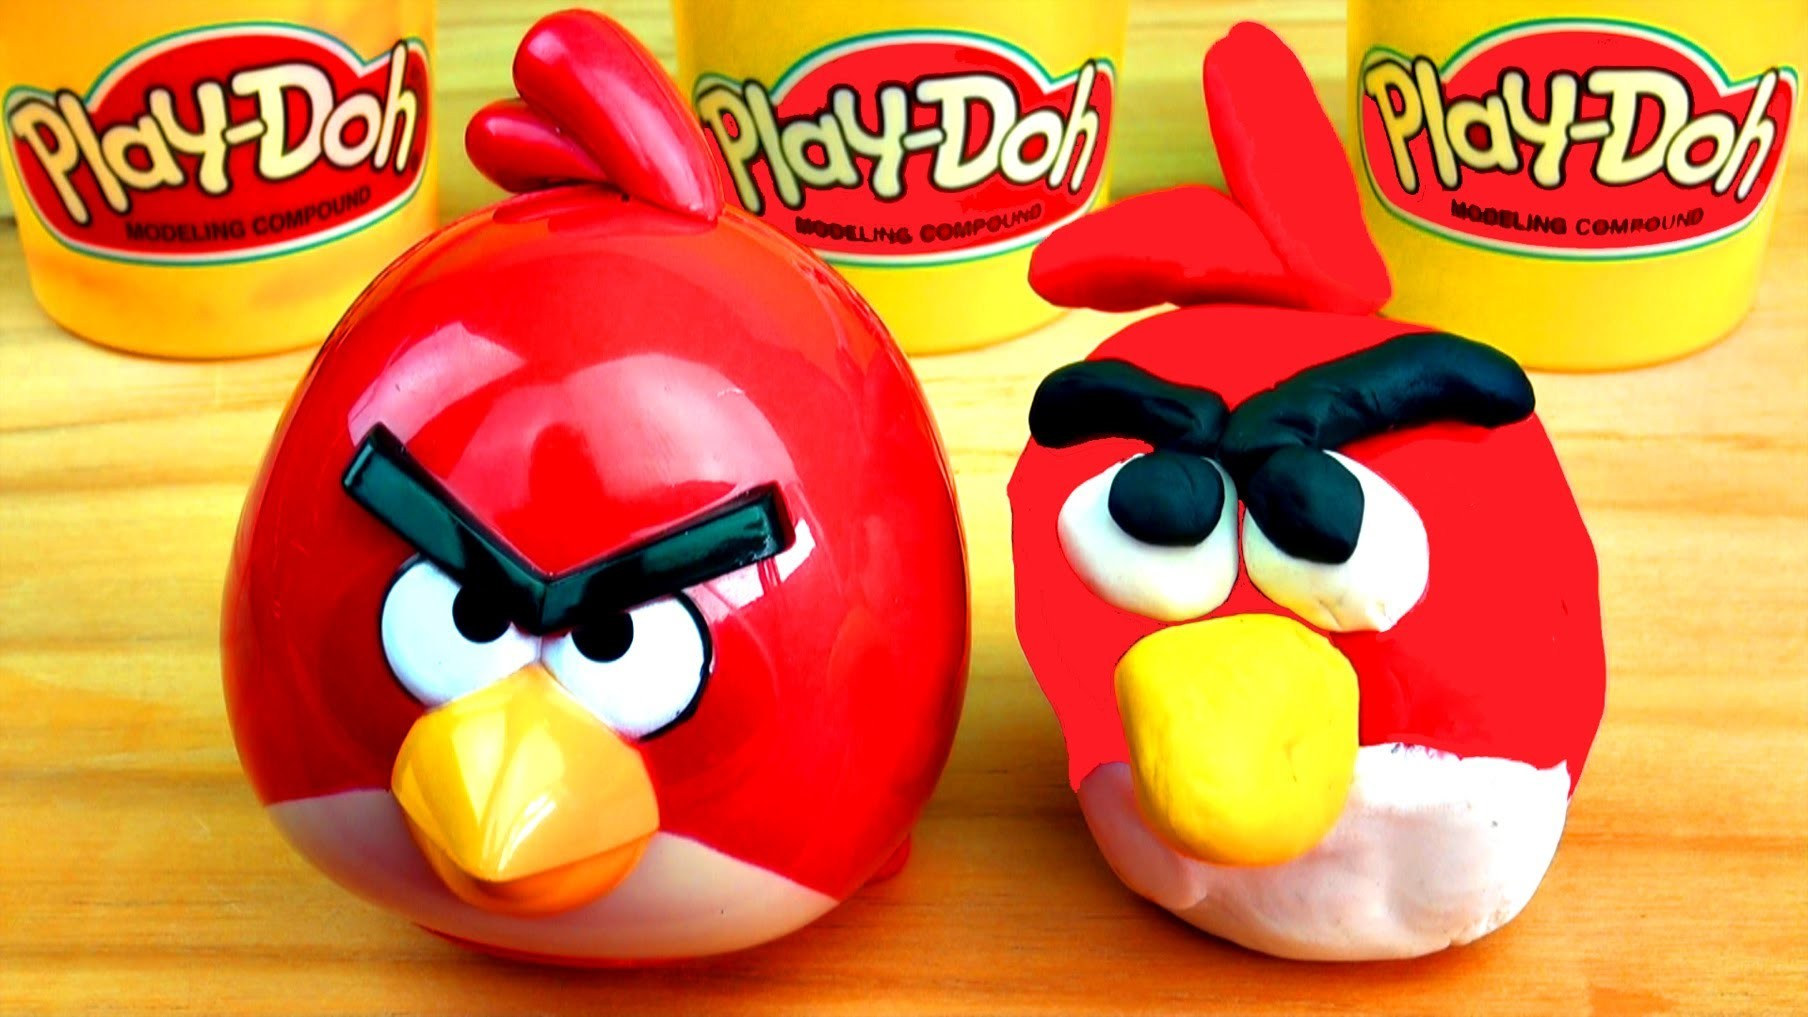 How-to Make Play Doh Angry Birds RED BIRD Playdough DIY Play-Doh Creations & fun ideas!